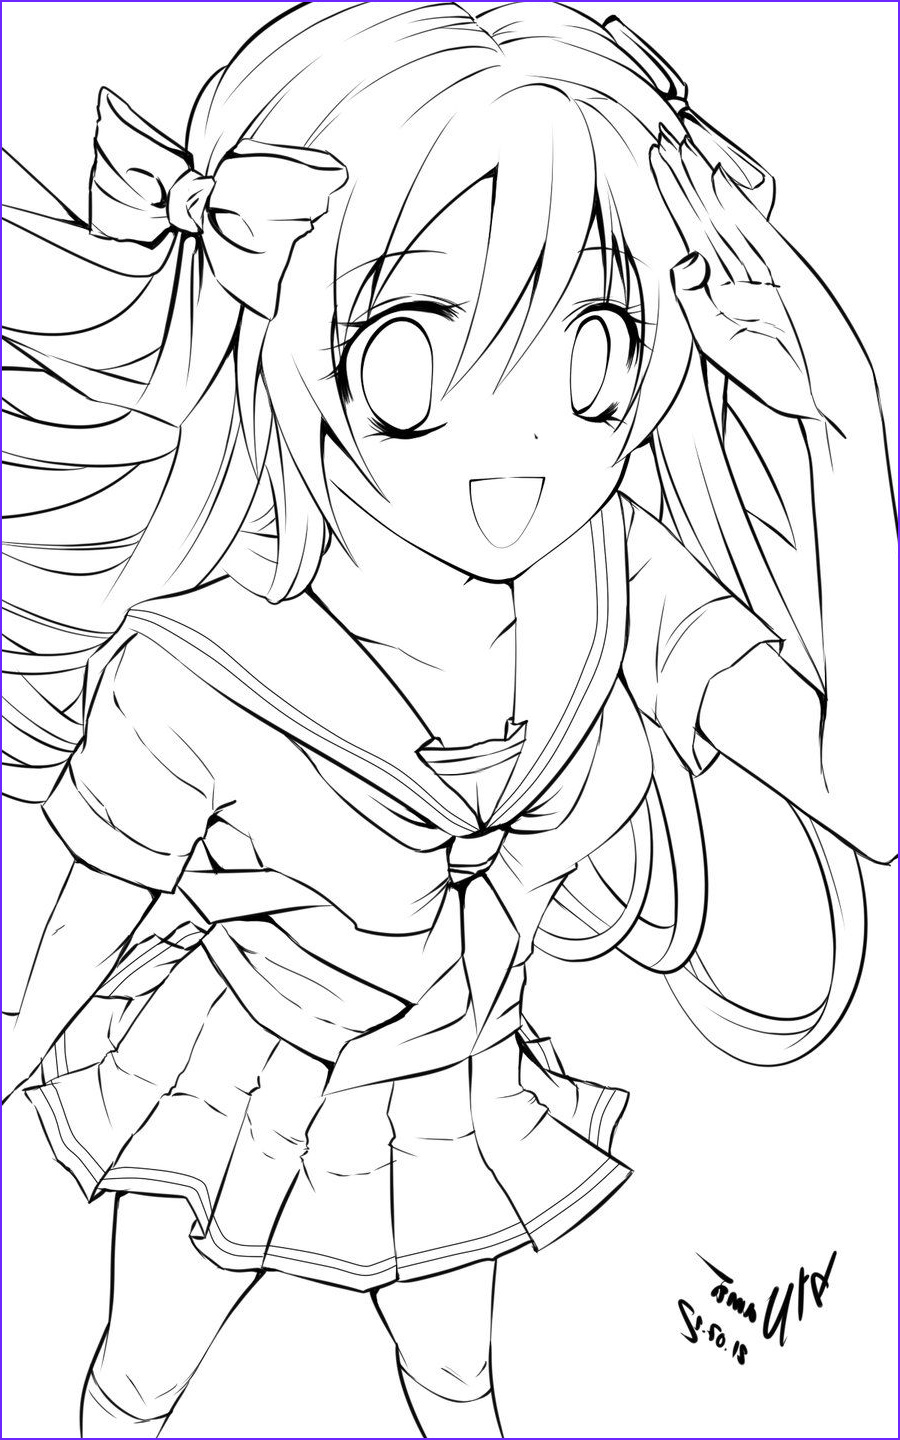 Printable Anime Coloring Pages Inspirational Stock Free Printable Anime Coloring Pages